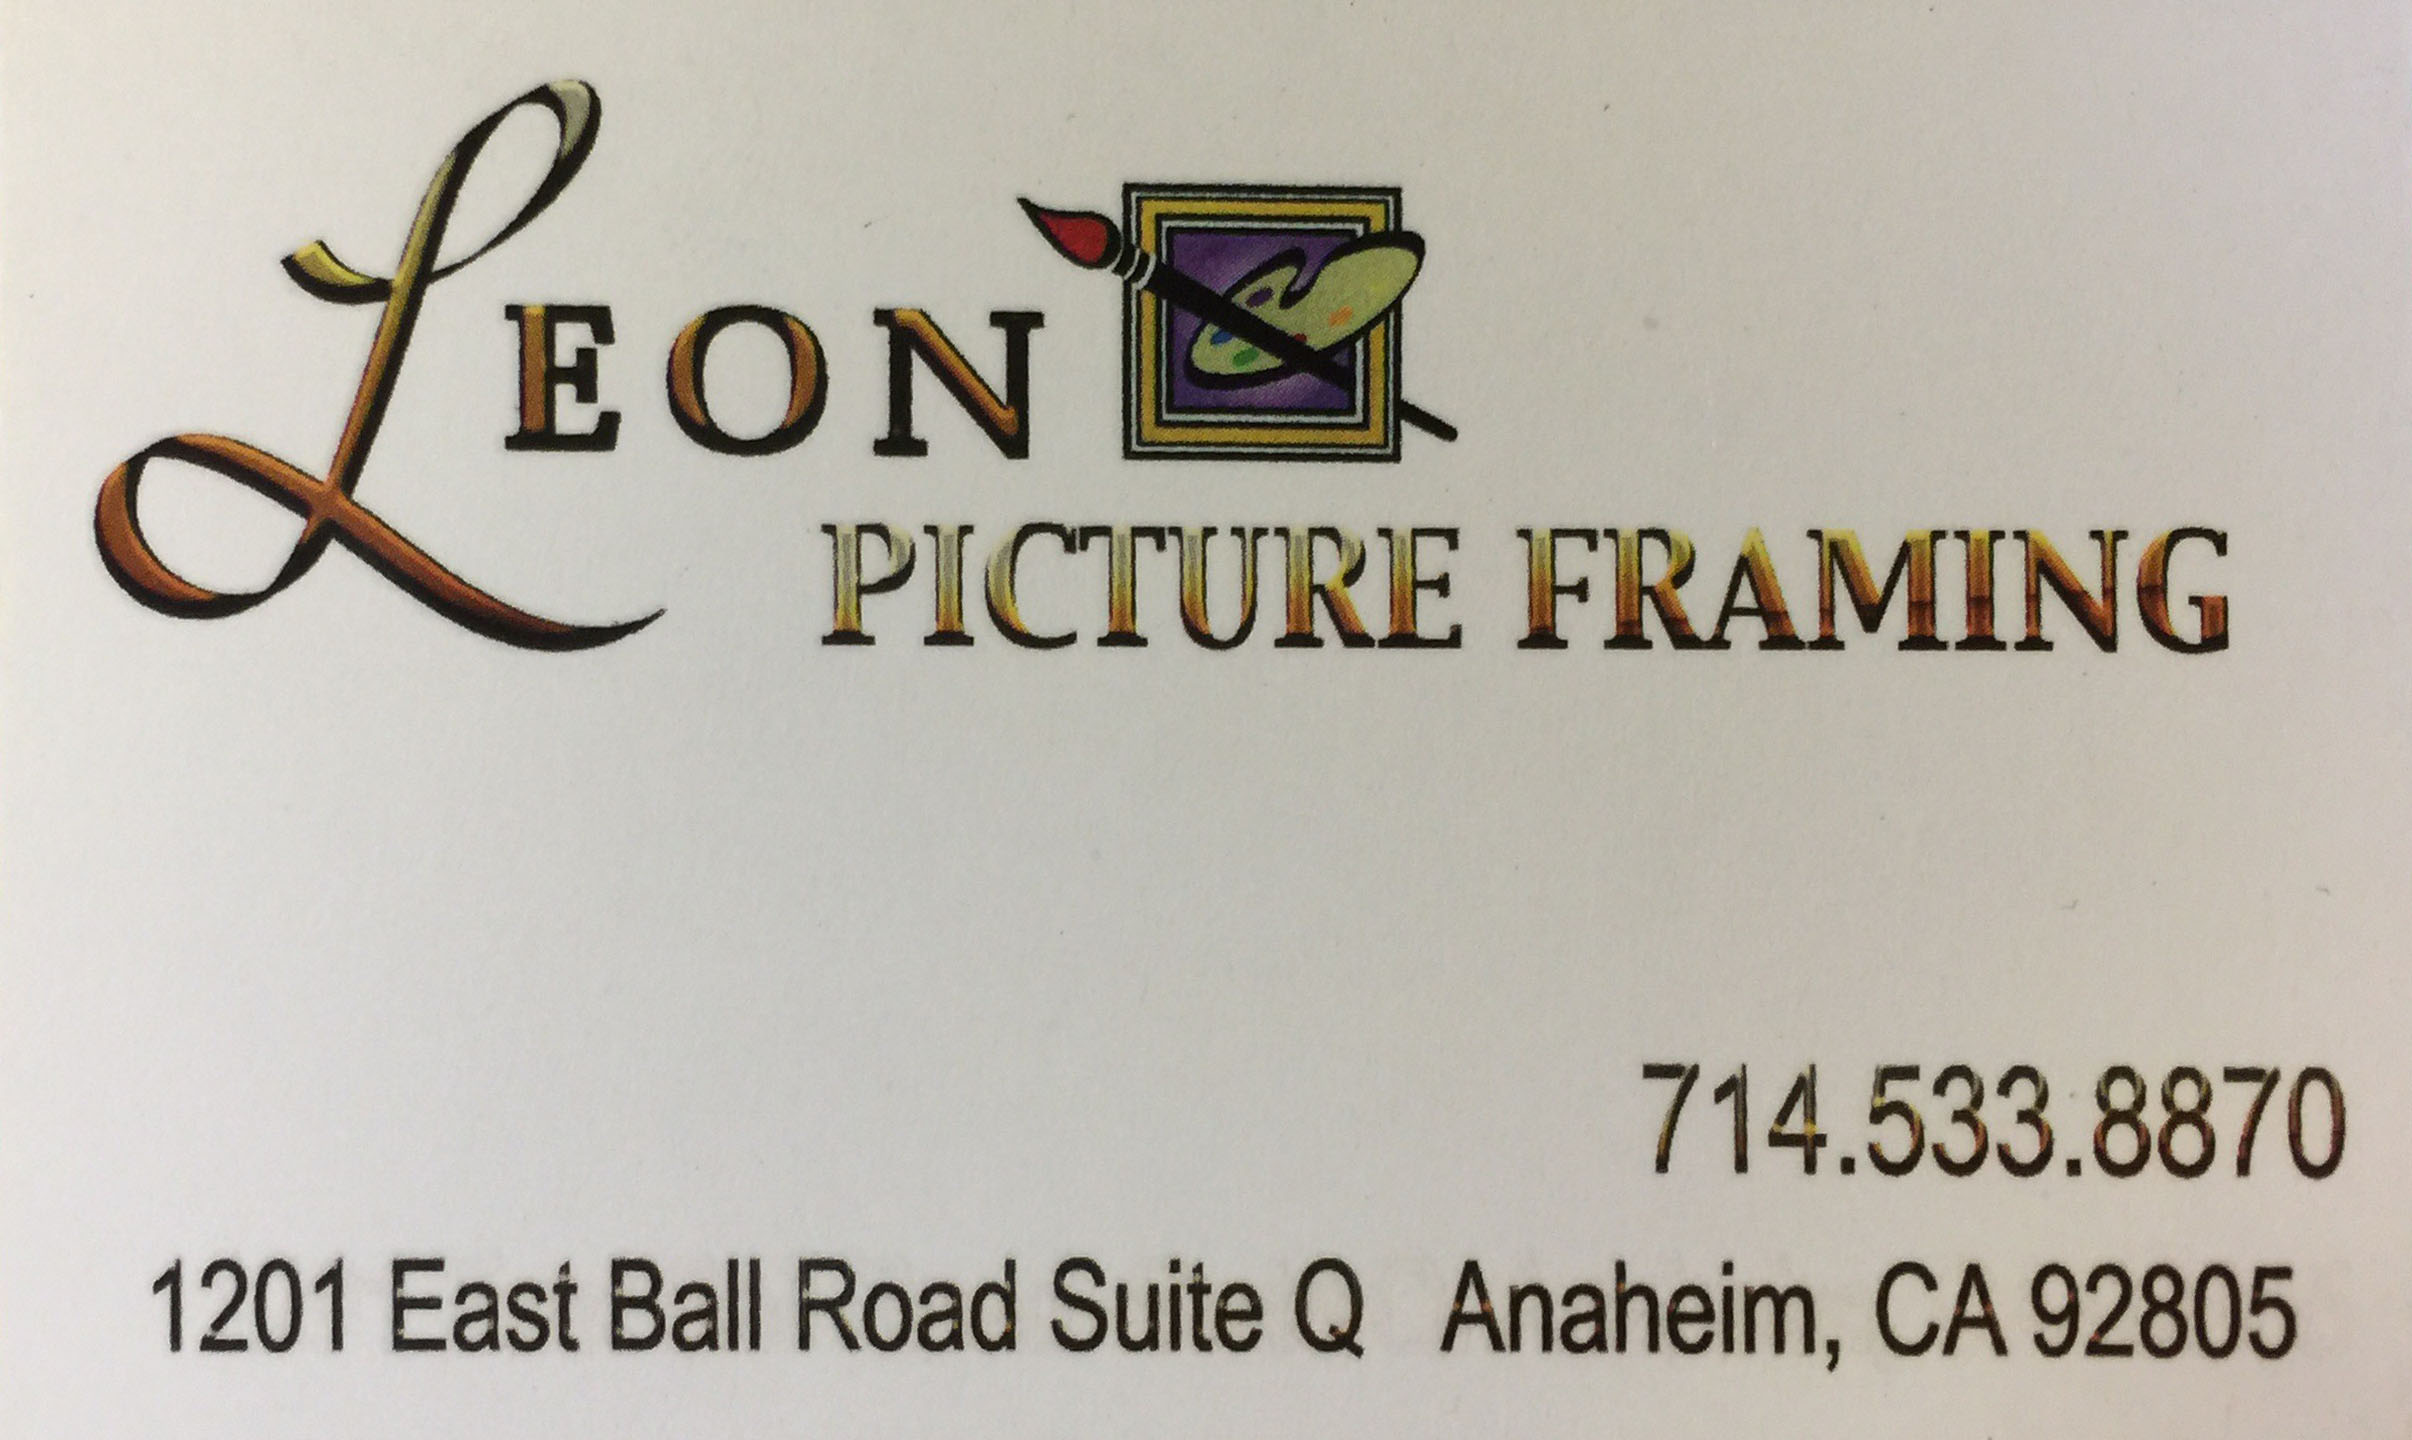 Leon Picture Framing